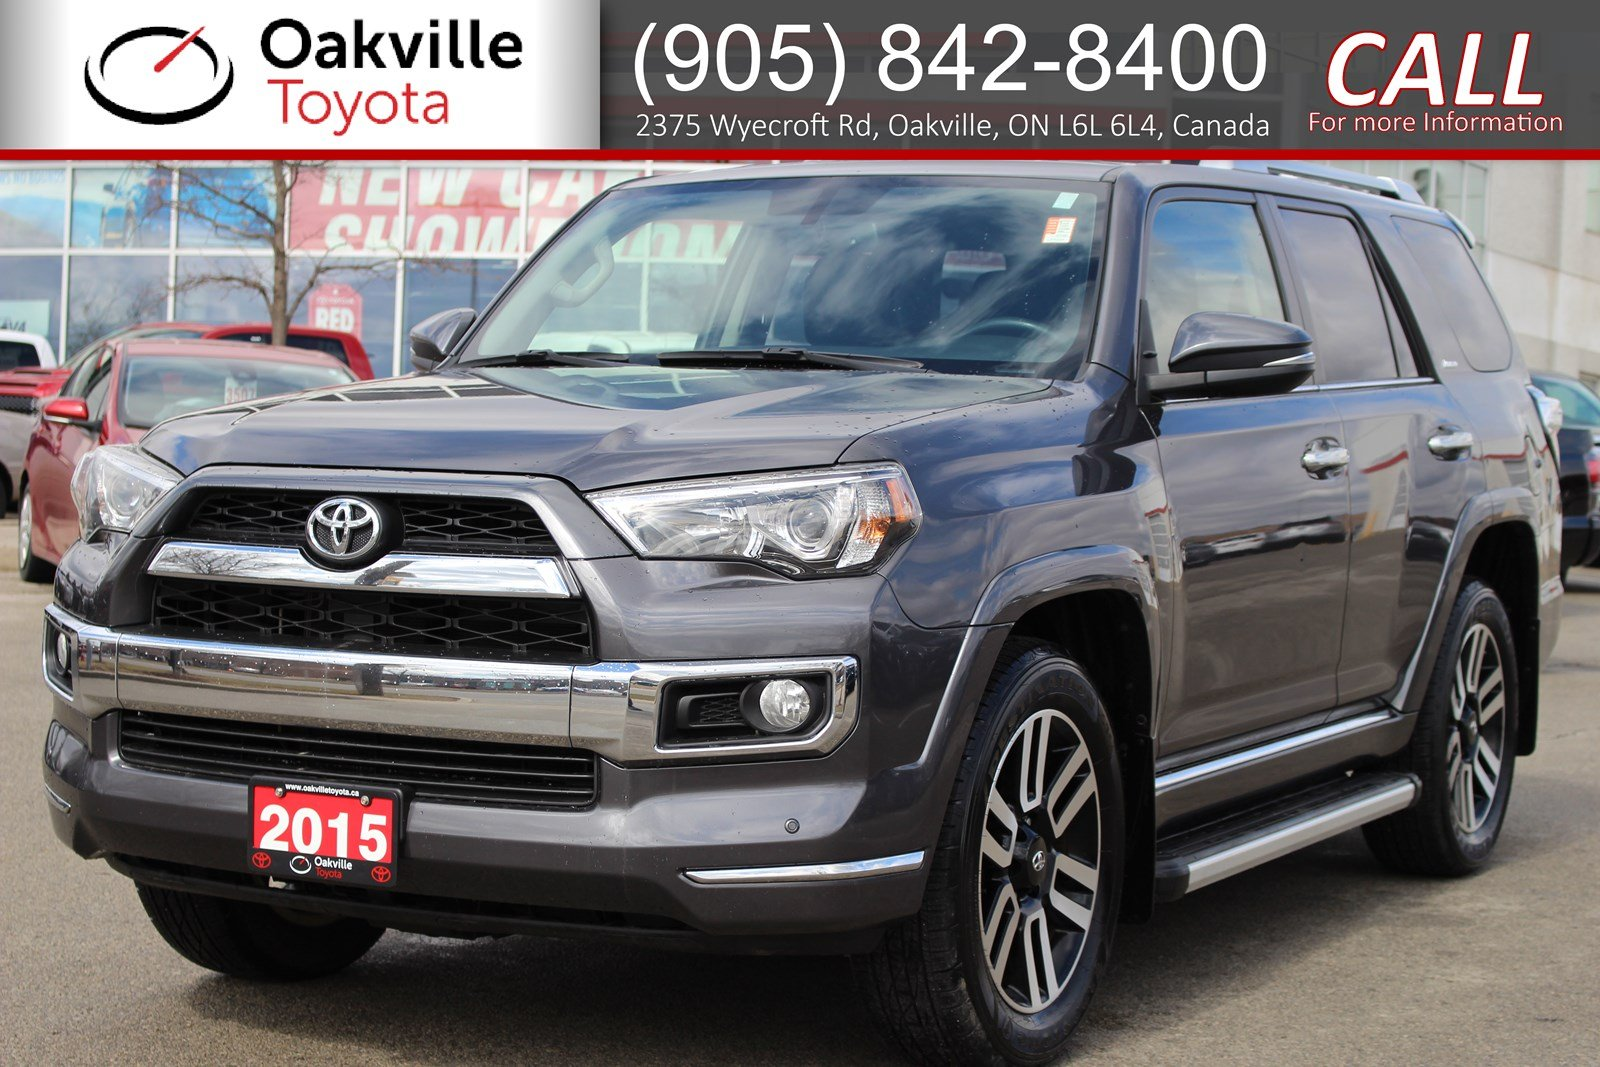 Pre-Owned 2015 Toyota 4Runner SR5 7-Passenger with Running Boards, Clean Carfax and Single Owner